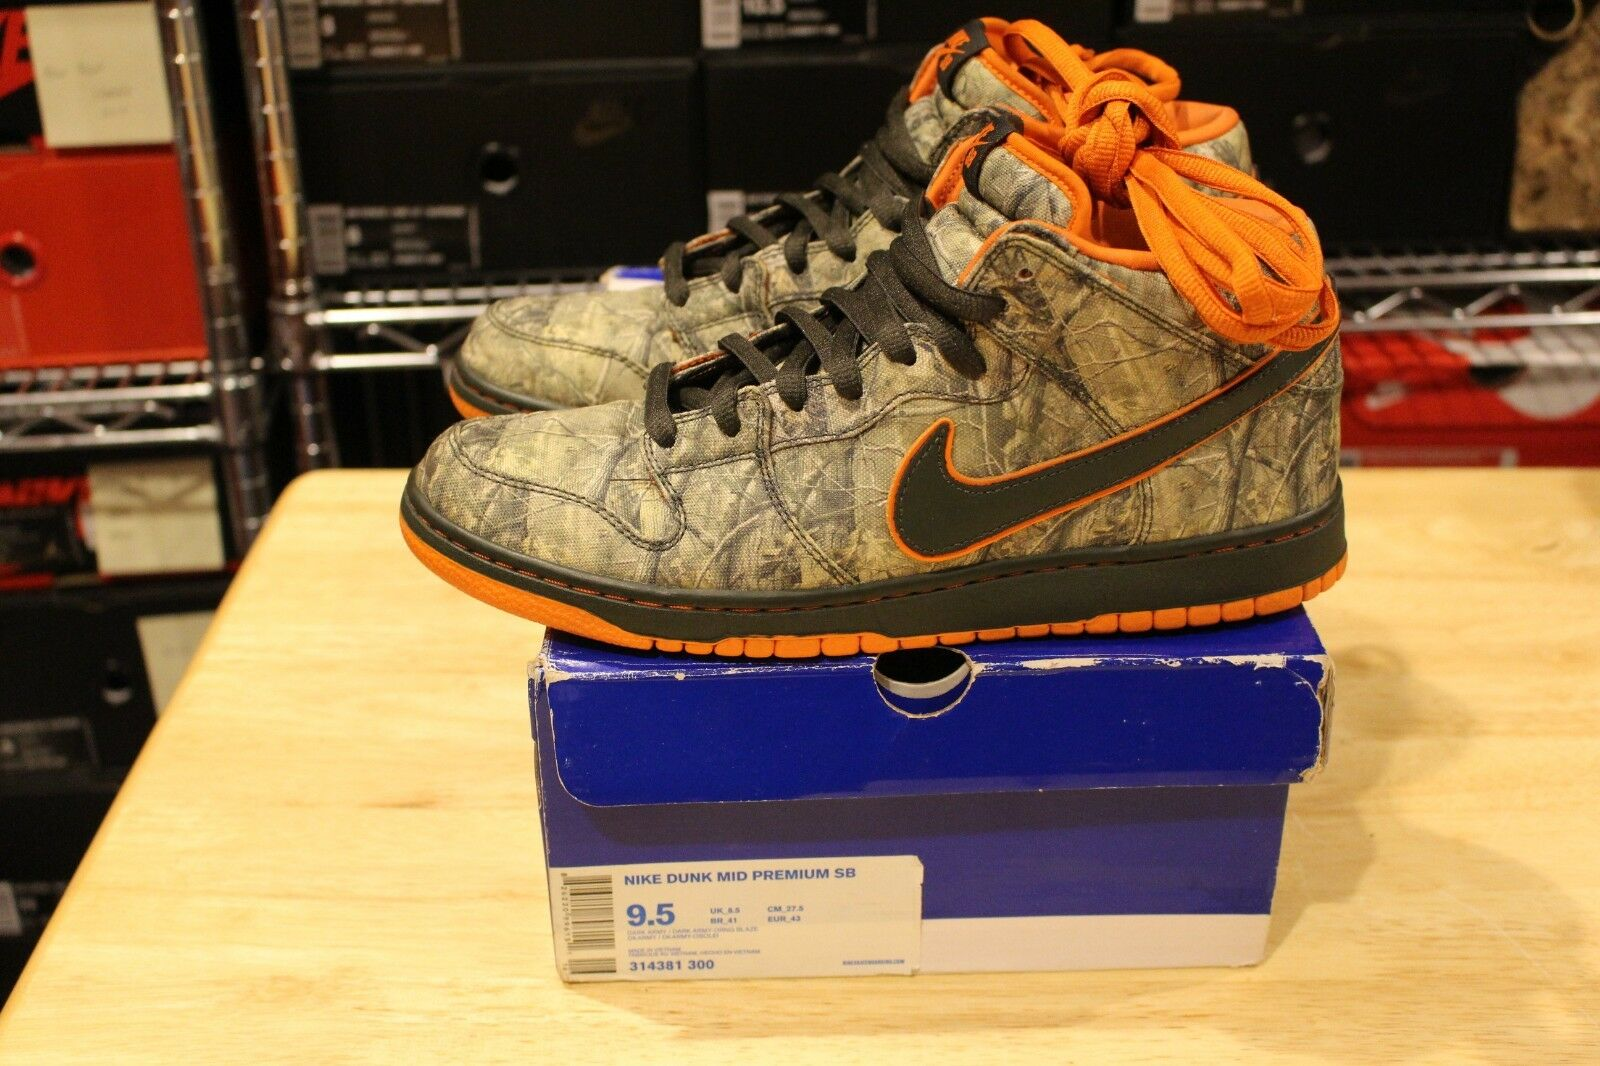 0422f8915361a Nike Dunk Mid Premium Realtree Camo 314381 Size 9.5. Supreme Jordan 1 Lot  SB 300 nwtfwx2389-Athletic Shoes